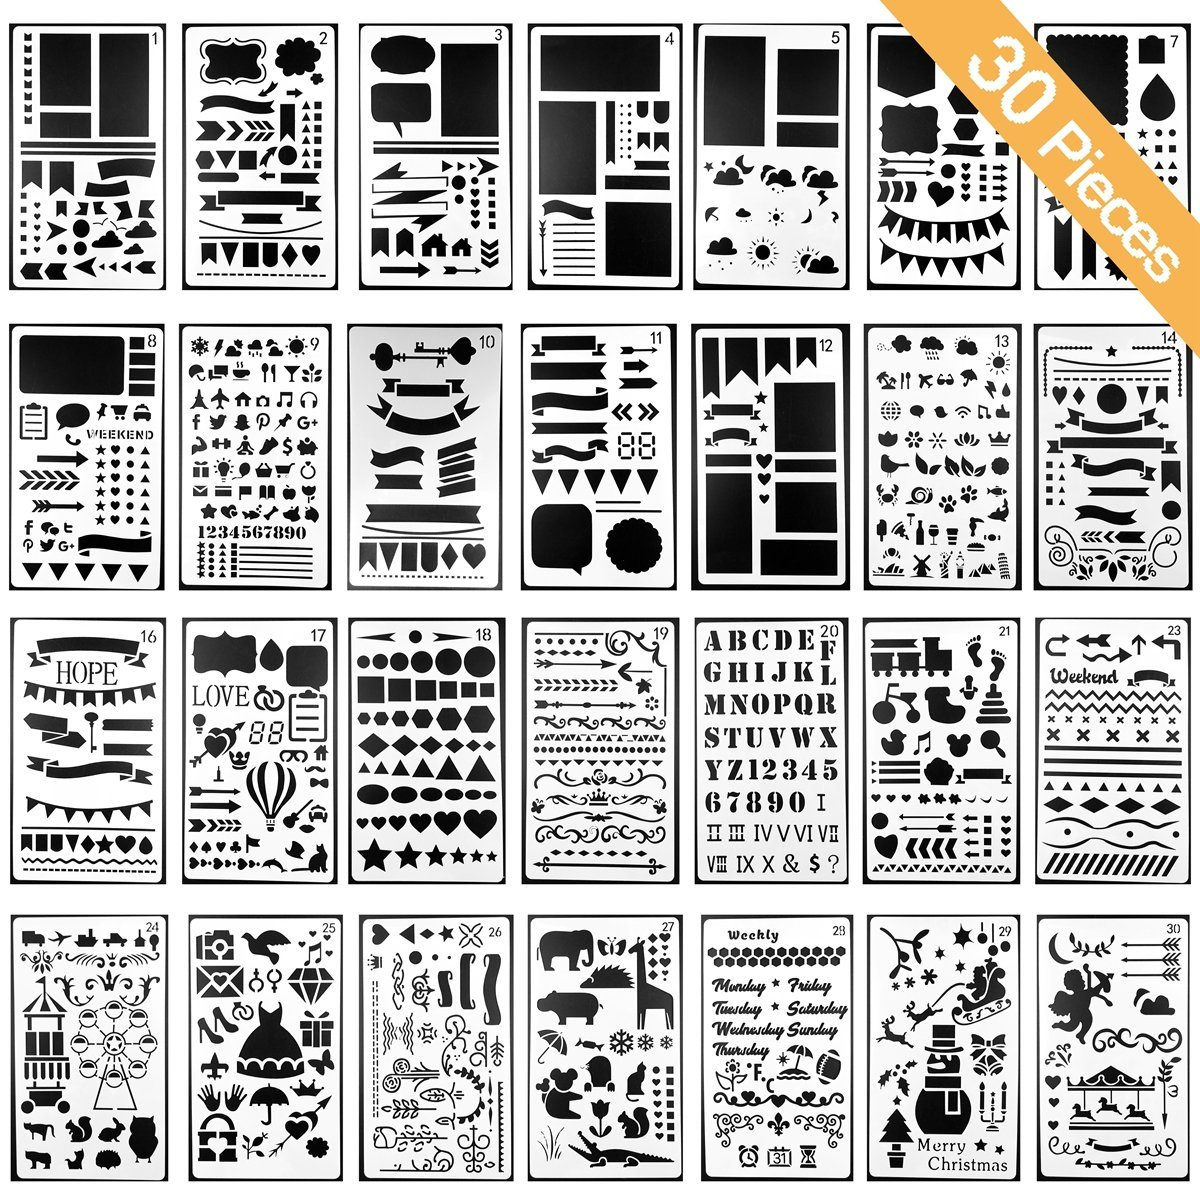 Stencils Template for DIY Scrapbooking Bullet Journaling Stencil Letters Notebook Diary Scrapbook Drawing Stamp Album Decor Embossing Paper Card School Stationery Supplies Hollow Out 30pcs 4x7inch eswala Stencils Scrapbooking